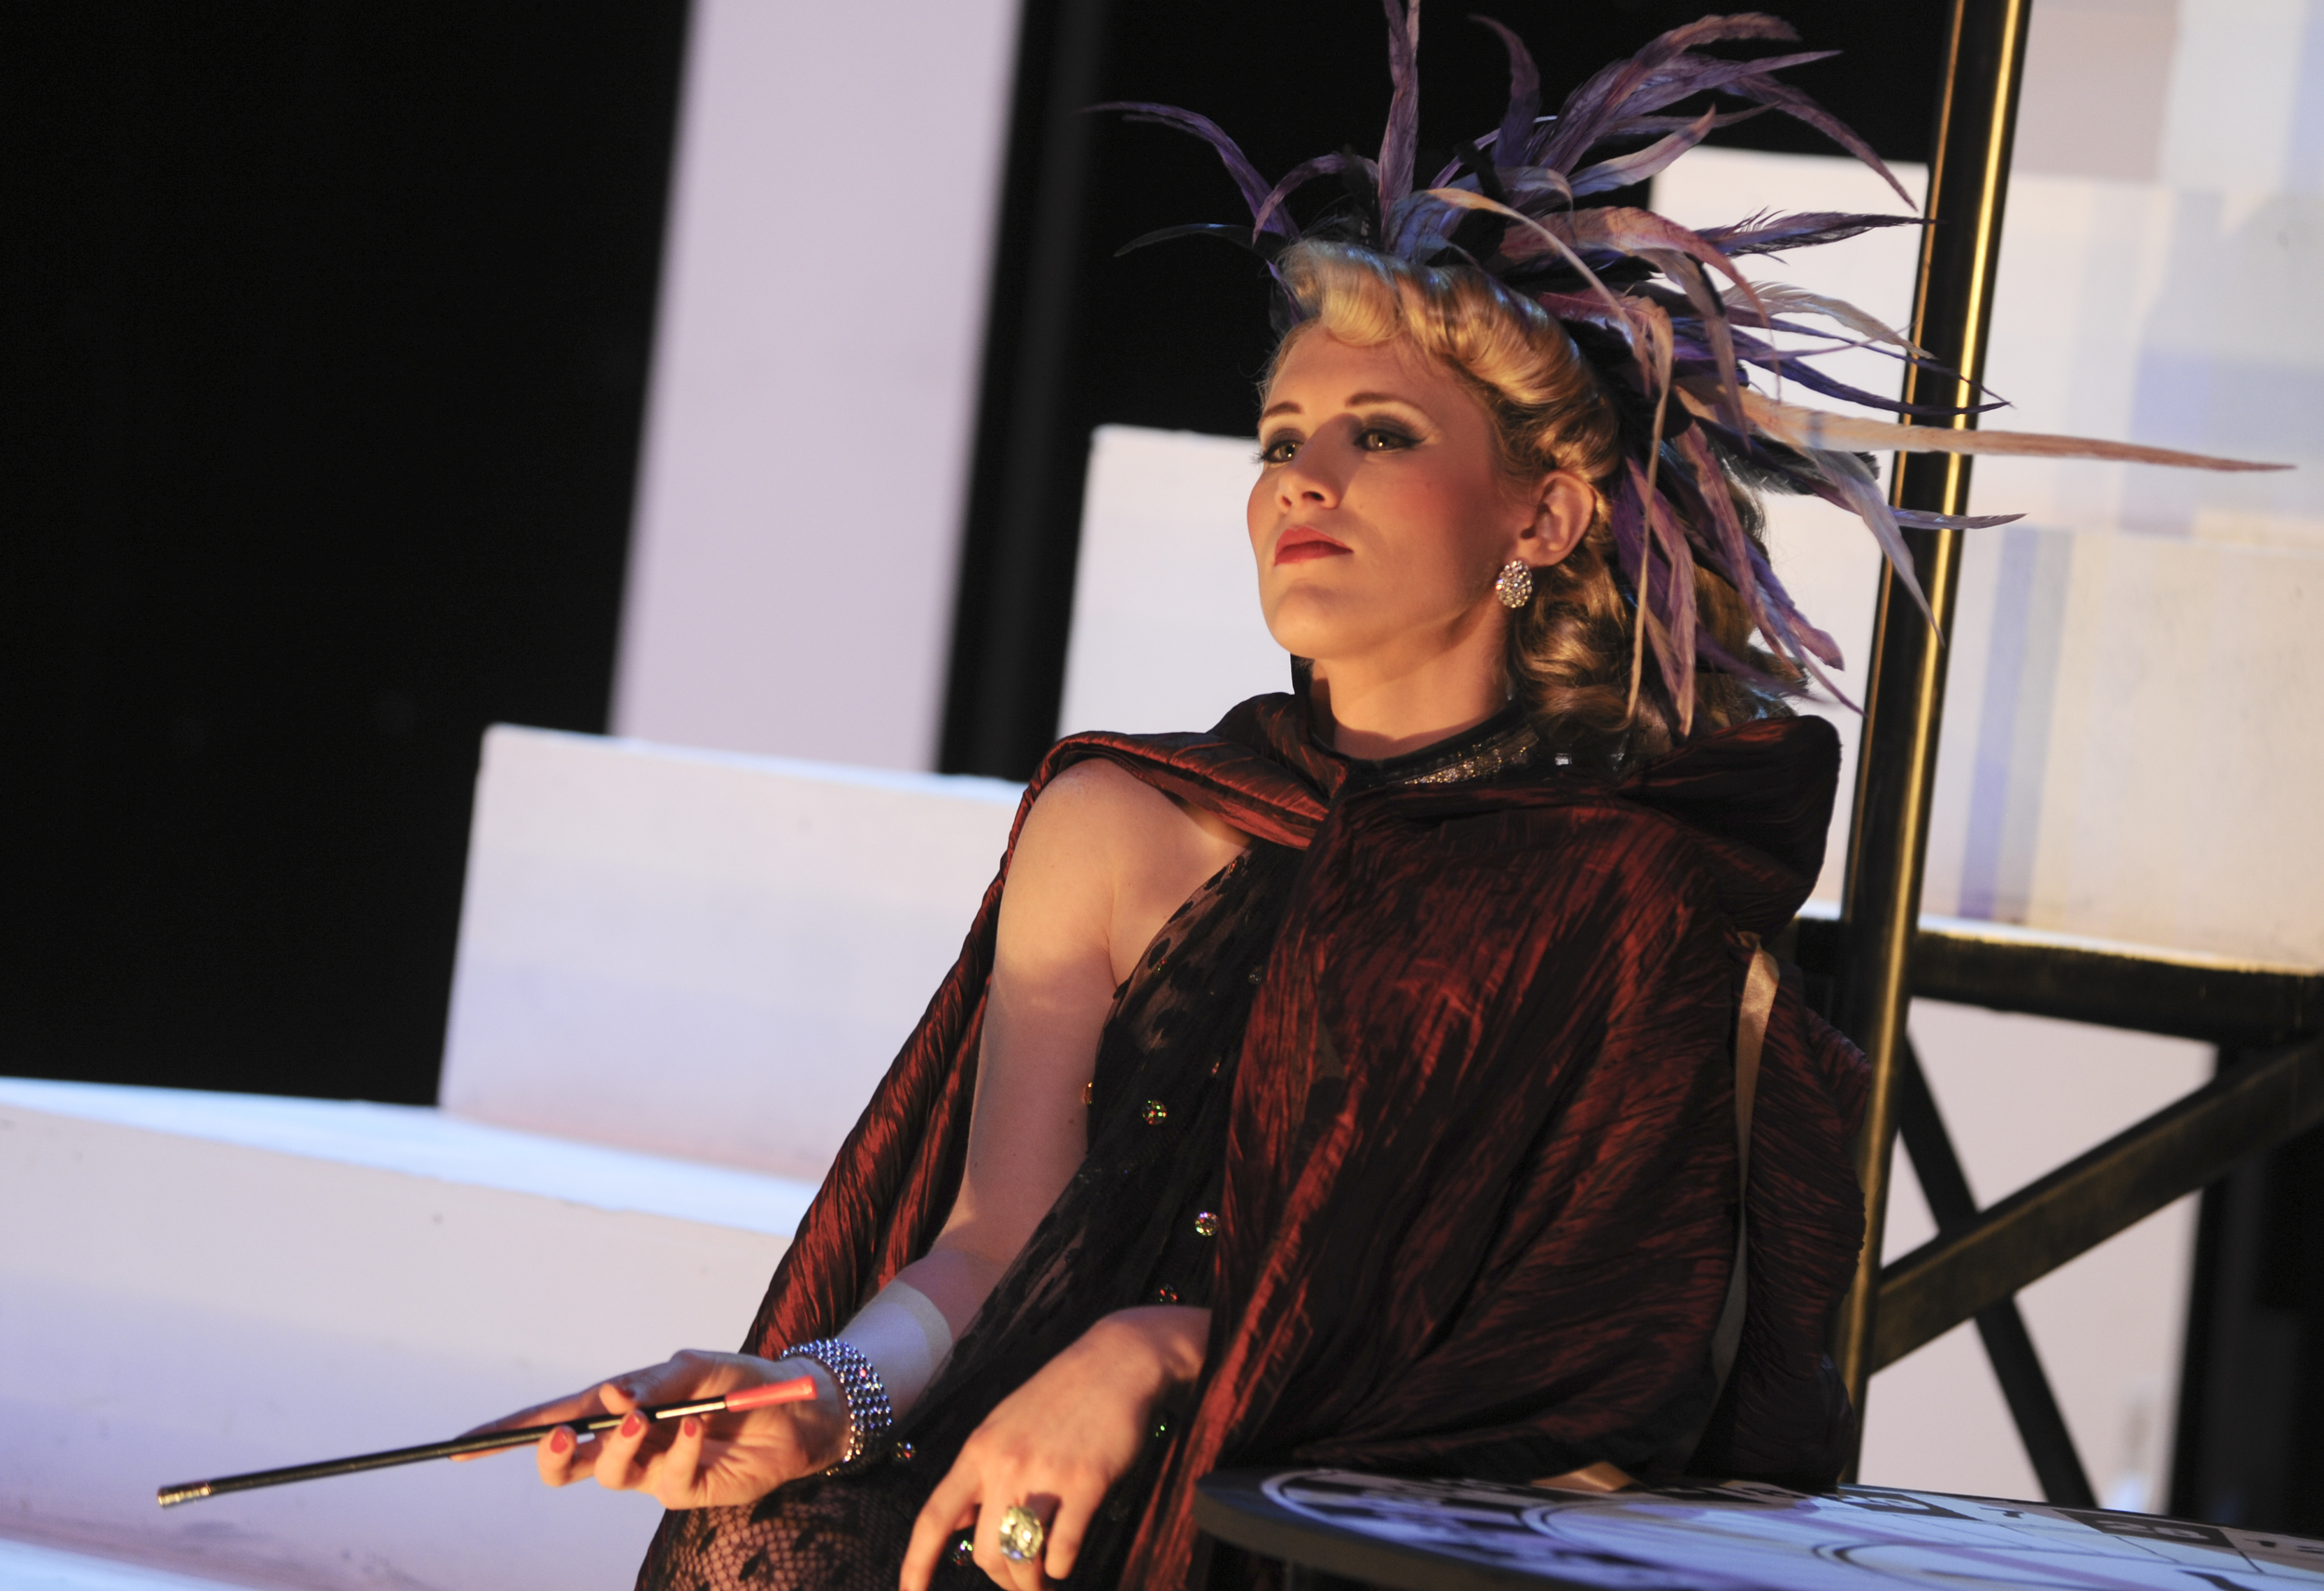 Sarah Toth - The Marriage of Figaro - Countess 2 copy.jpg